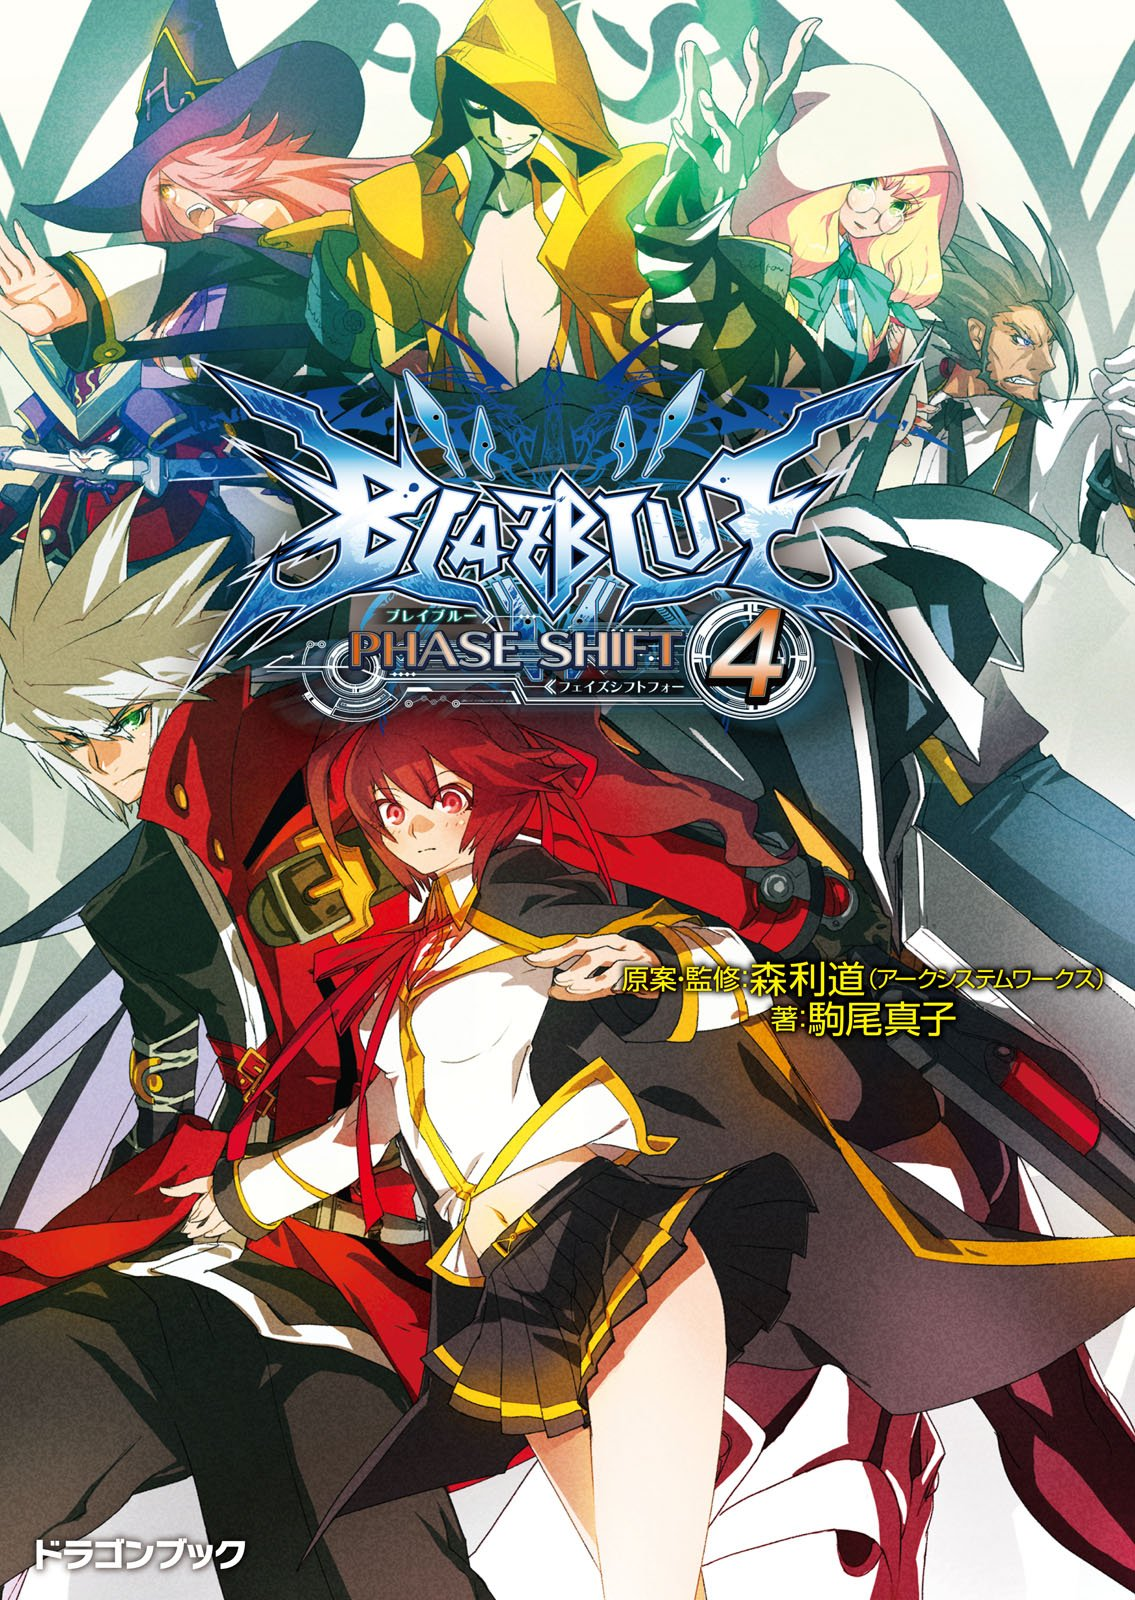 BlazBlue: Phase Shift 4 (October 2012)